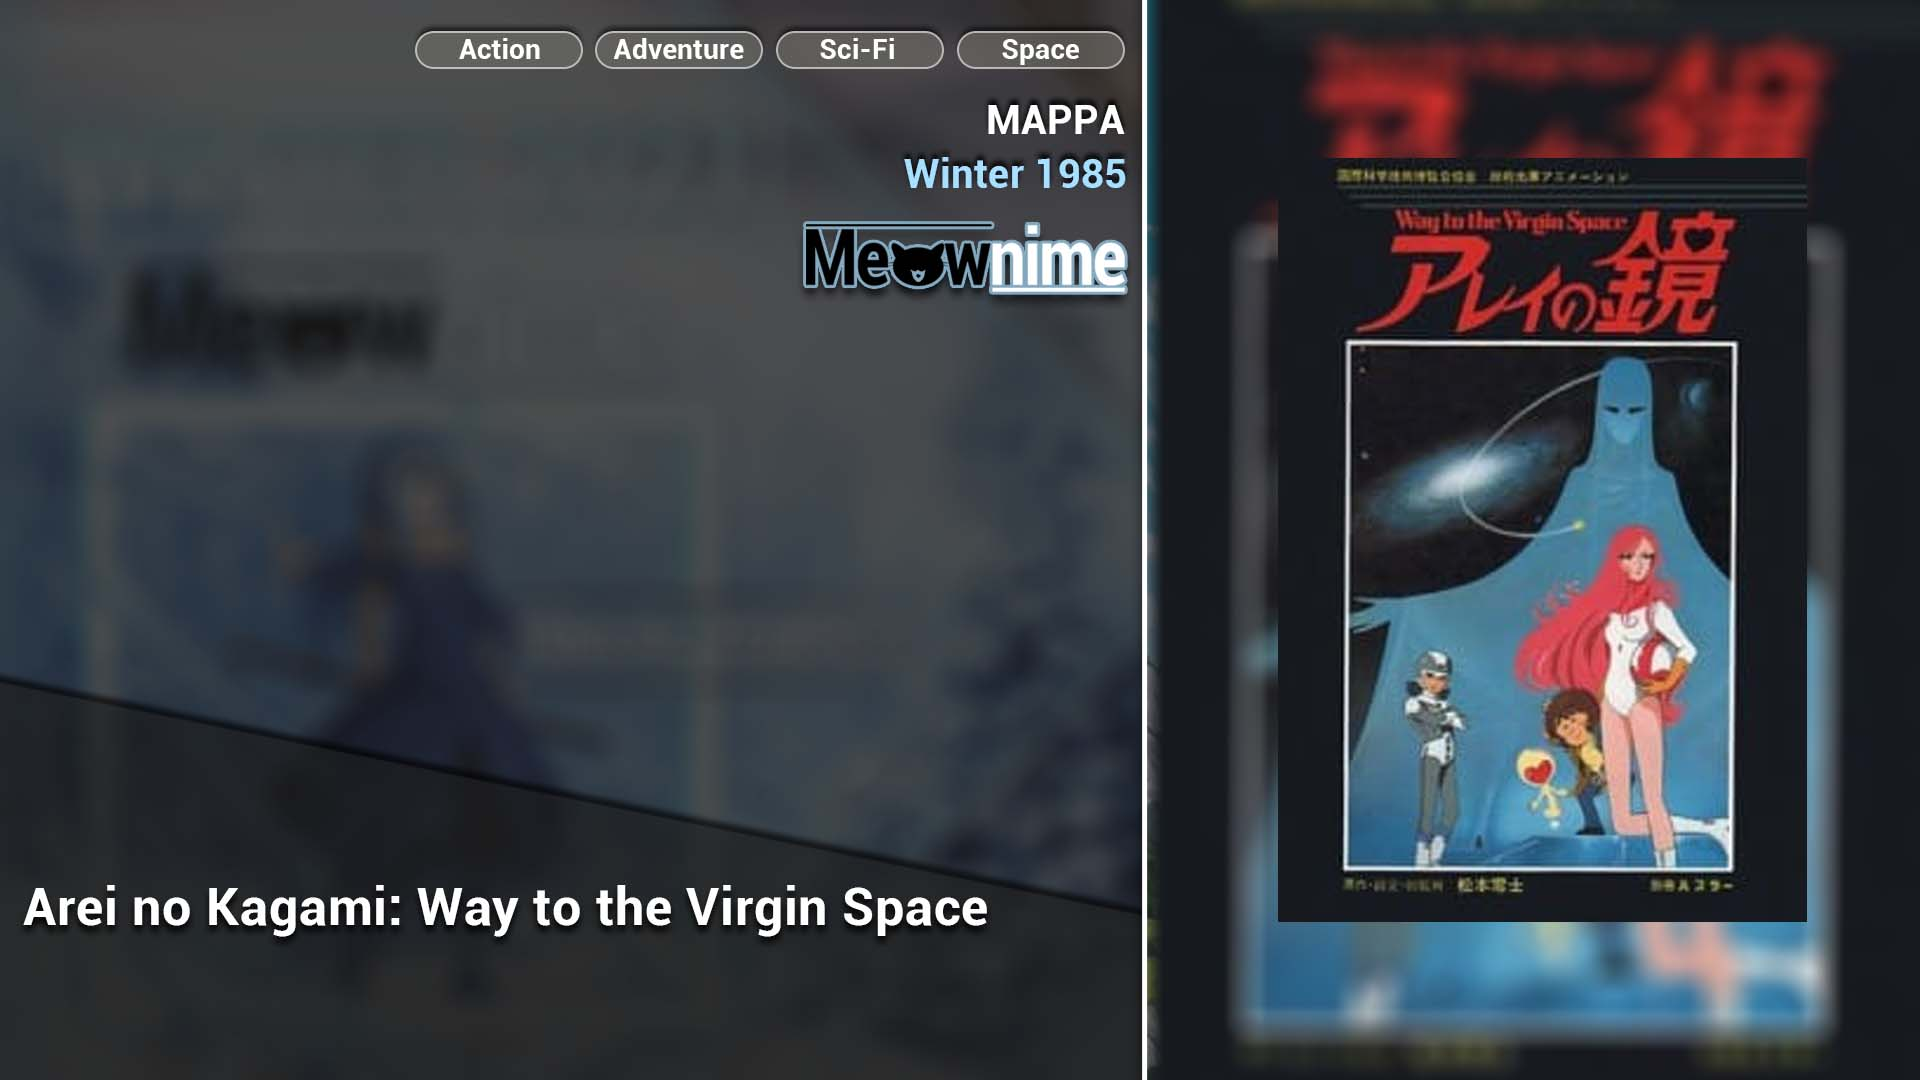 Arei no Kagami. Way to the Virgin Space